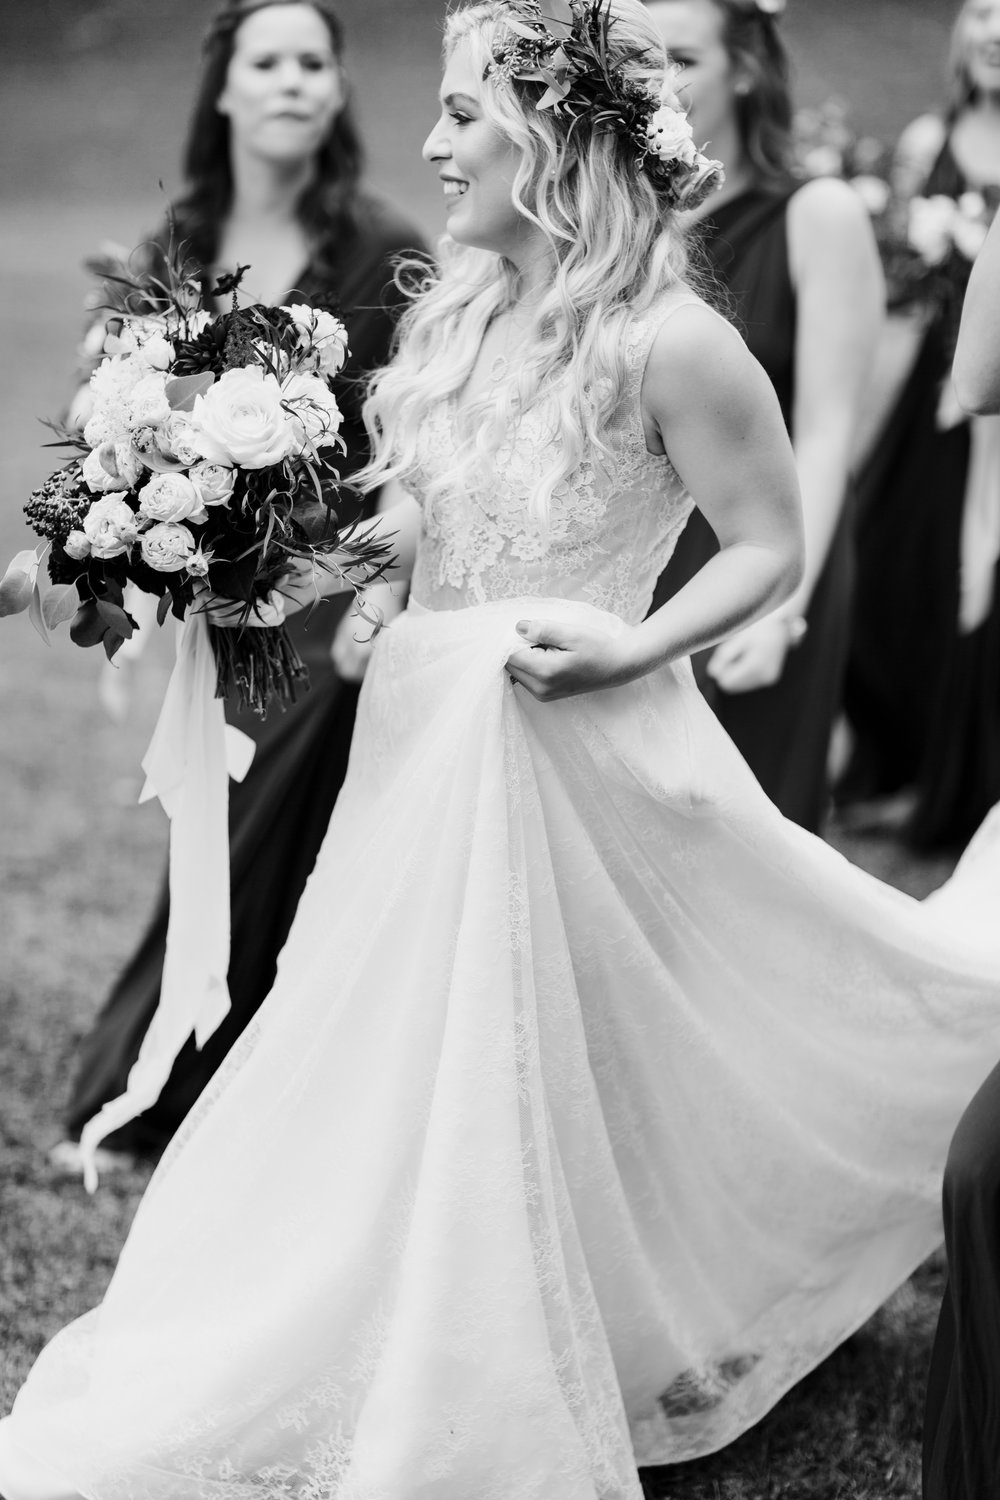 black and white of a bride walking with her bridesmaids